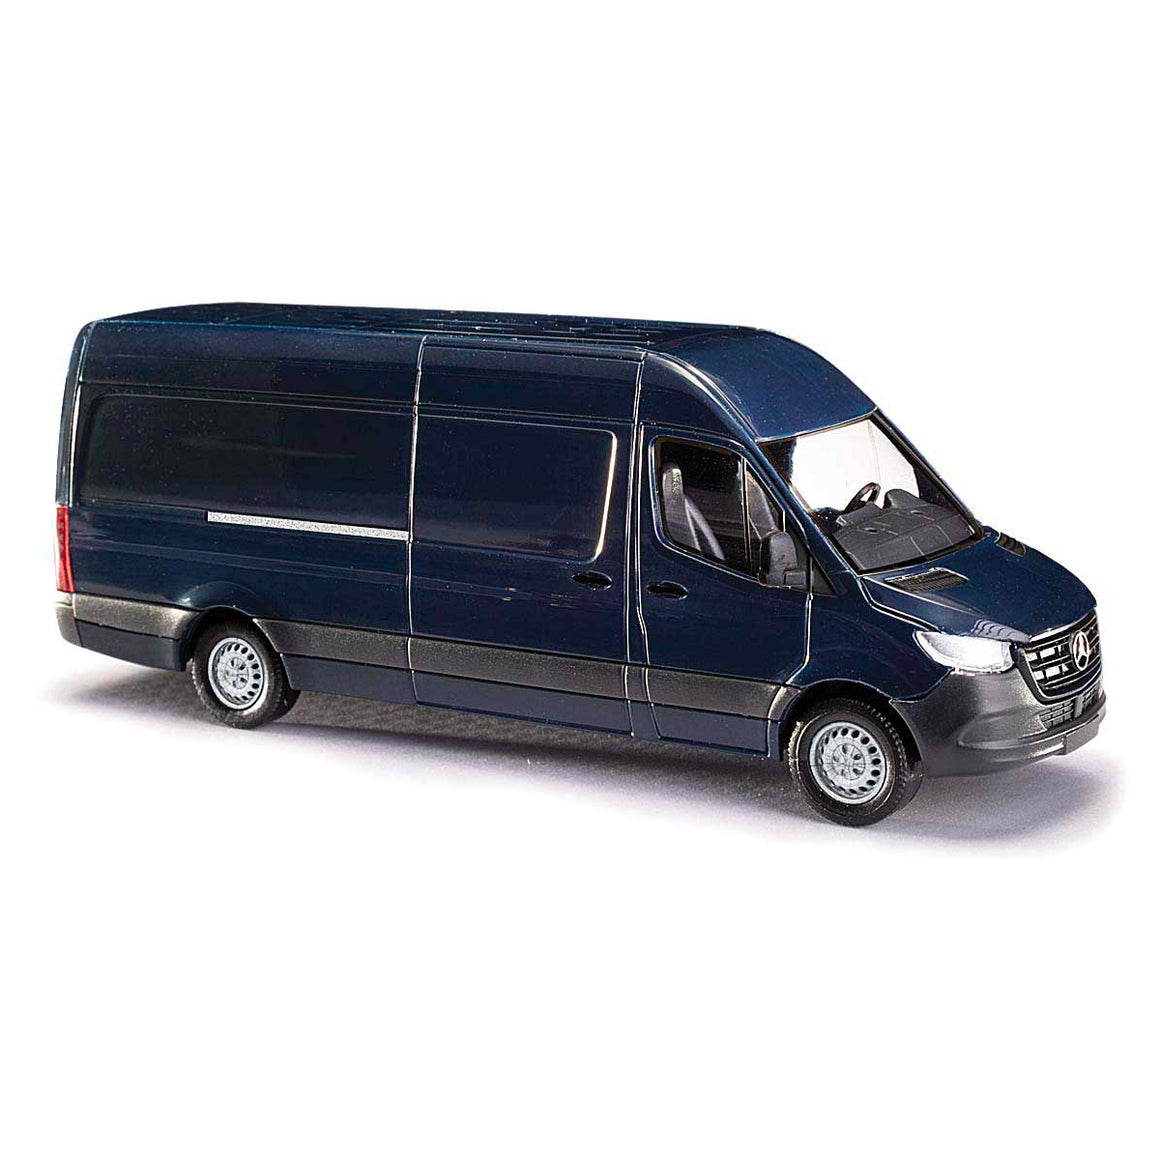 HO Scale: Mercedes Benz Sprinter Van - Blue